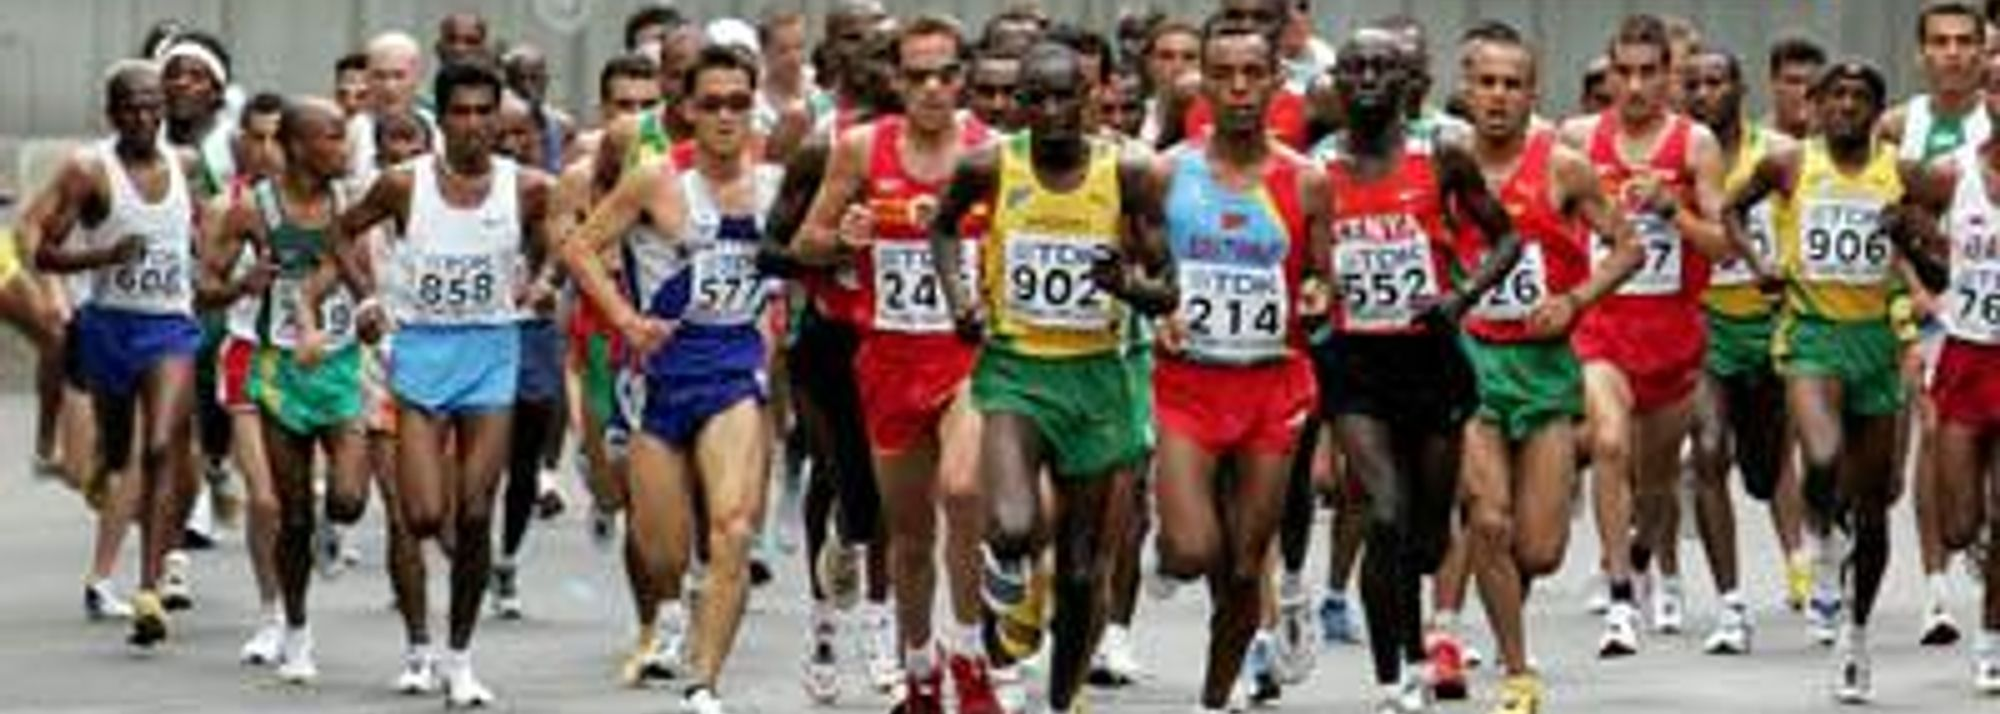 In what could well be remembered as one of the big surprises of the 10th IAAF World Championships in Athletics, Tanzanian runner Christopher Isegwe won his country's first ever medal in the 22-year history of the World Championships when finishing second in the Marathon behind Morocco's runaway champion Jaouad Gharib.